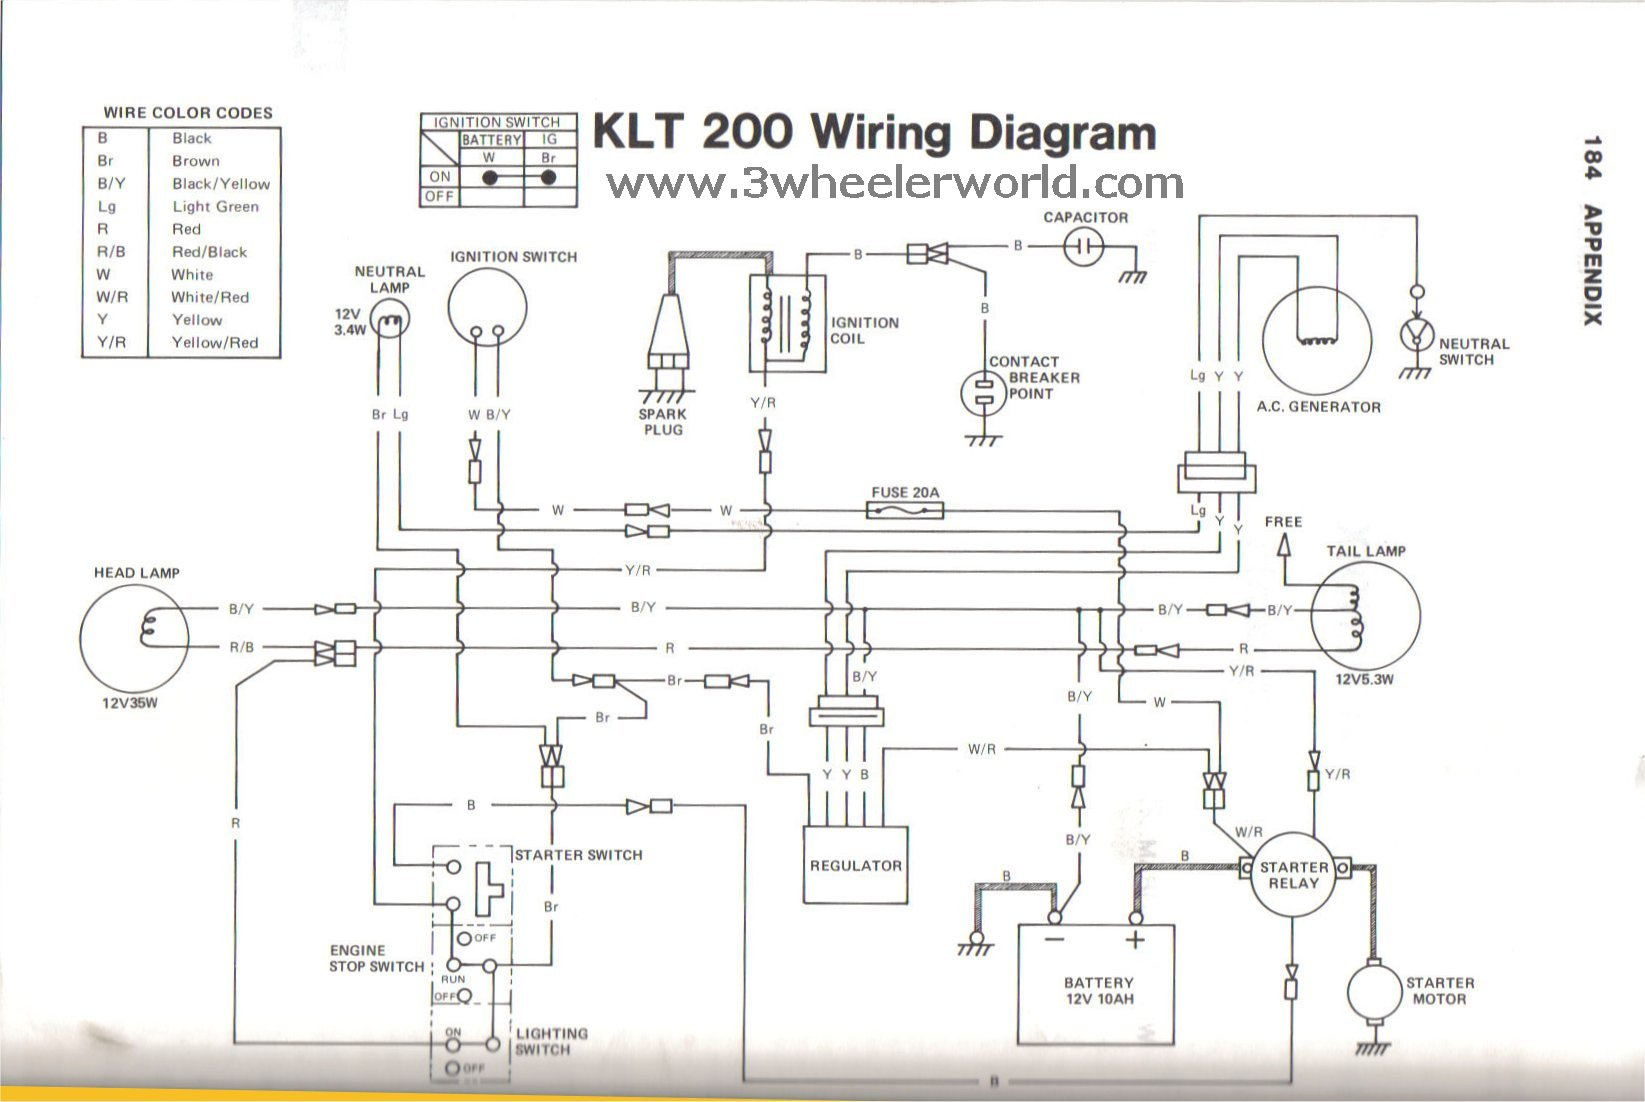 3 wheeler world tech help kawasaki wiring diagrams rh 3wheelerworld com Kawasaki Bayou 220 Wiring Diagram Kawasaki 300 Bayou Wiring Diagram